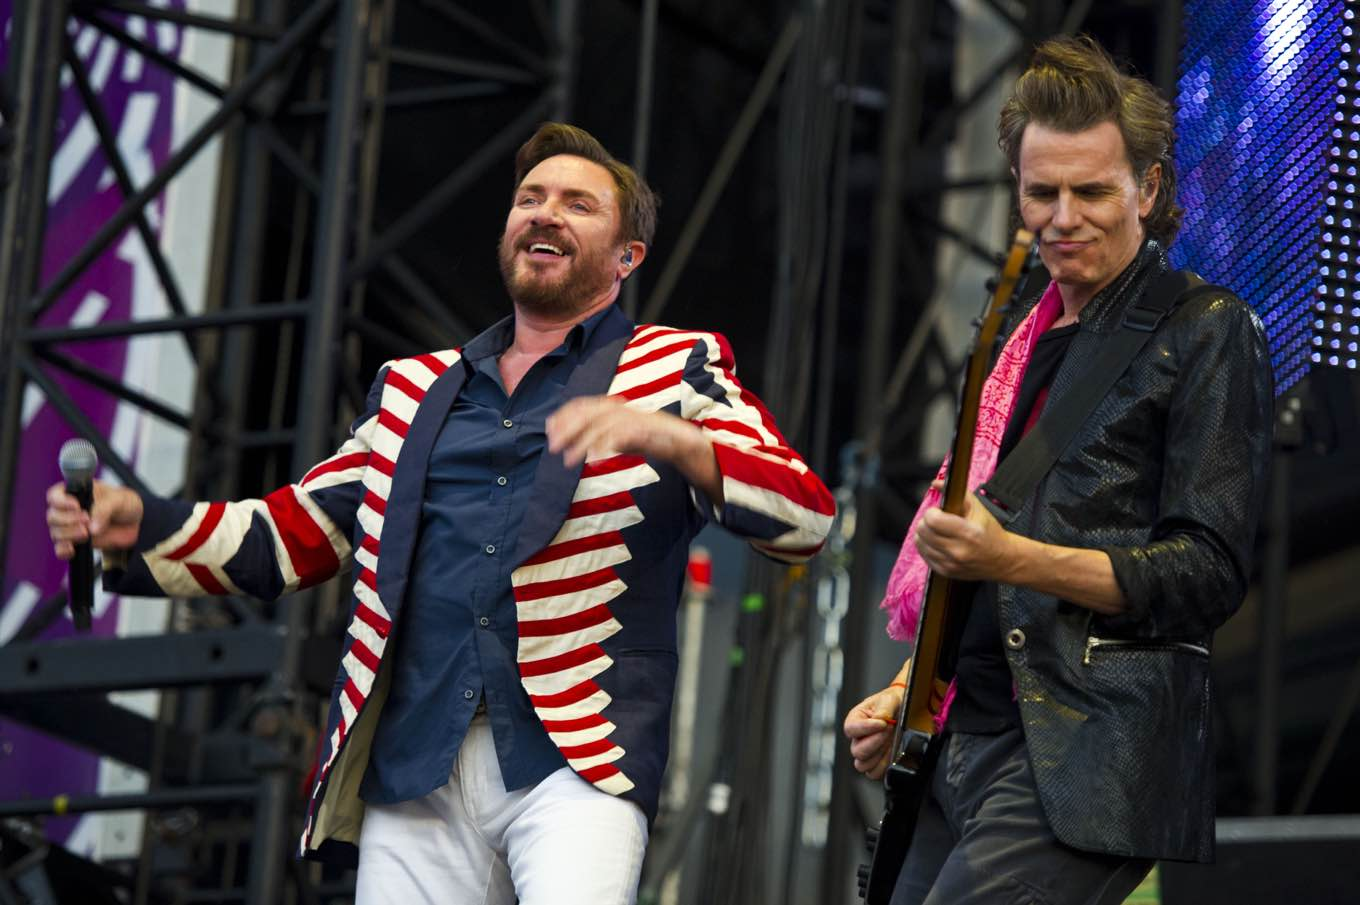 Duran Duran perform at the Opening Ceremony Celebration Concert in Hyde Park, London, Friday, July 27, 2012. The concert is part of a series of events being organised by the Mayor of London, Boris Johnson, to celebrate the London 2012 Olympic Games. (AP Photo/James McCauley)